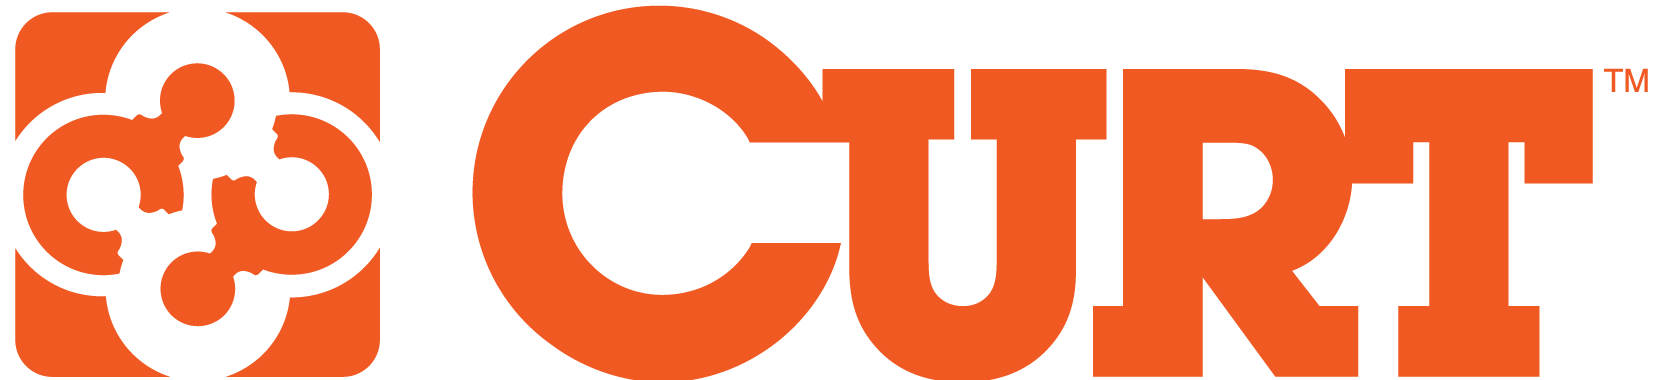 https://dealeroptions.com/wp-content/uploads/2019/01/CURT-LOGO.png